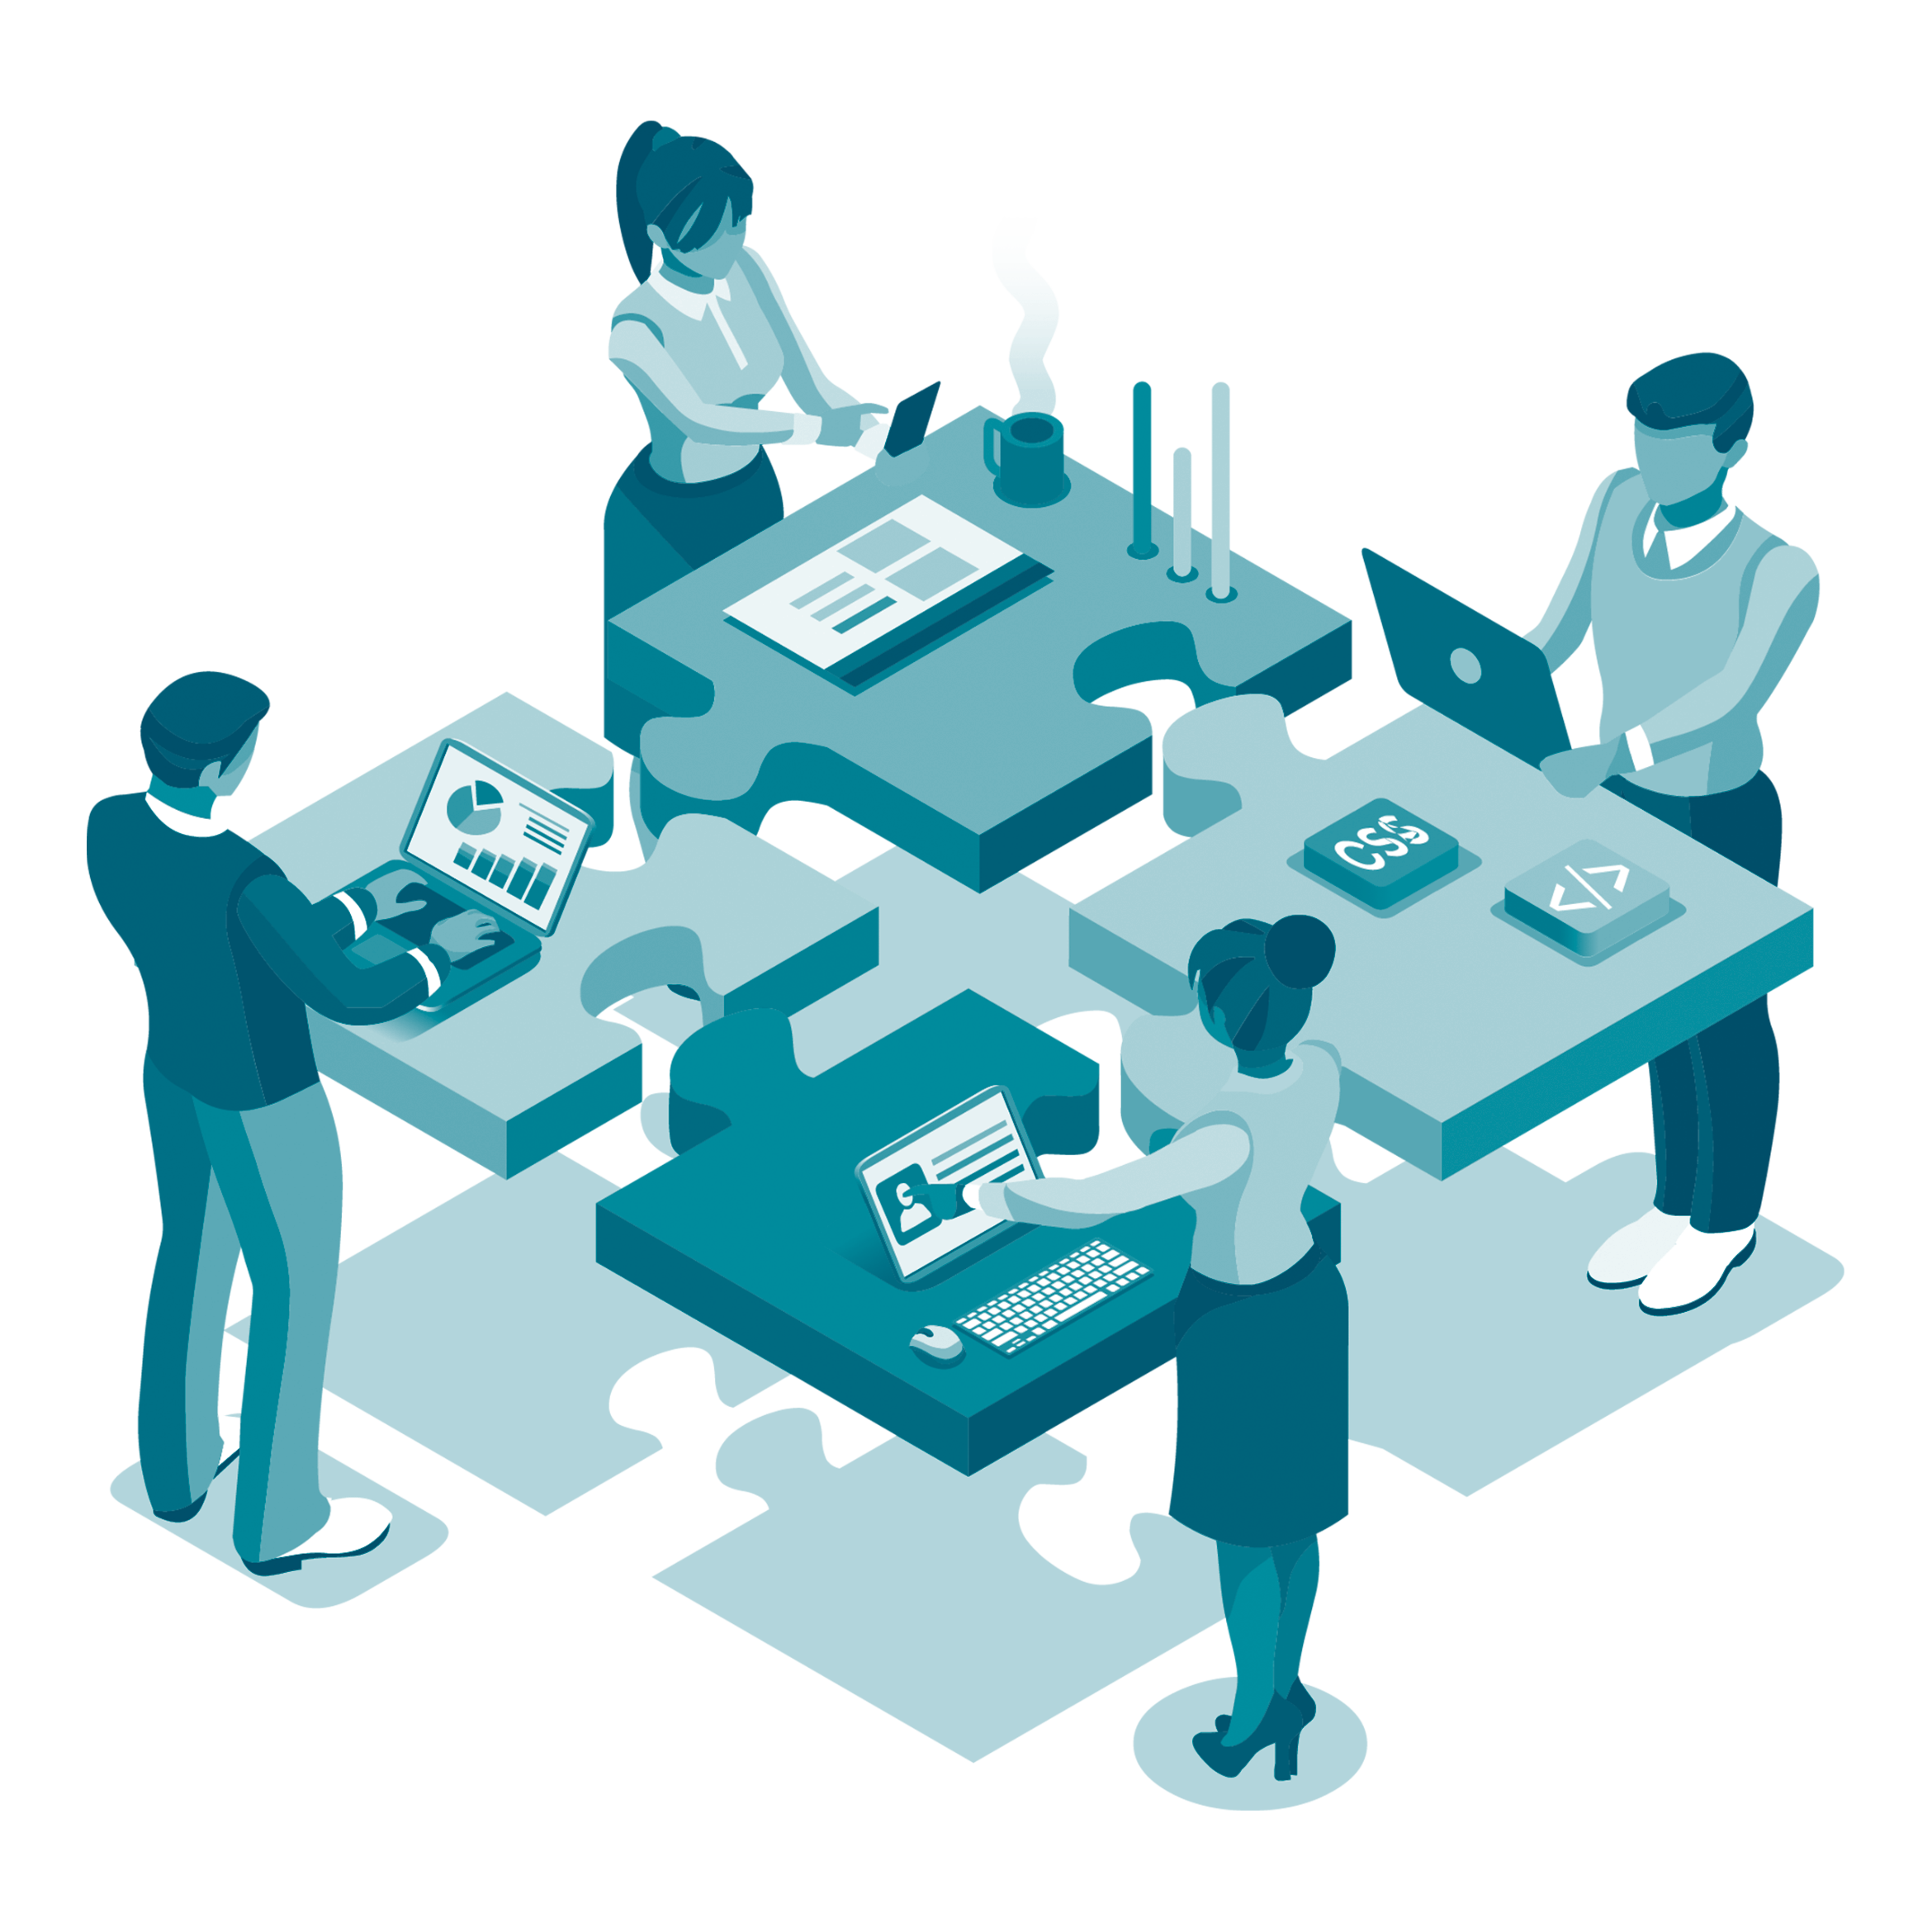 graphic showing 4 people each working and talking around a table made of 4 puzzle pieces.